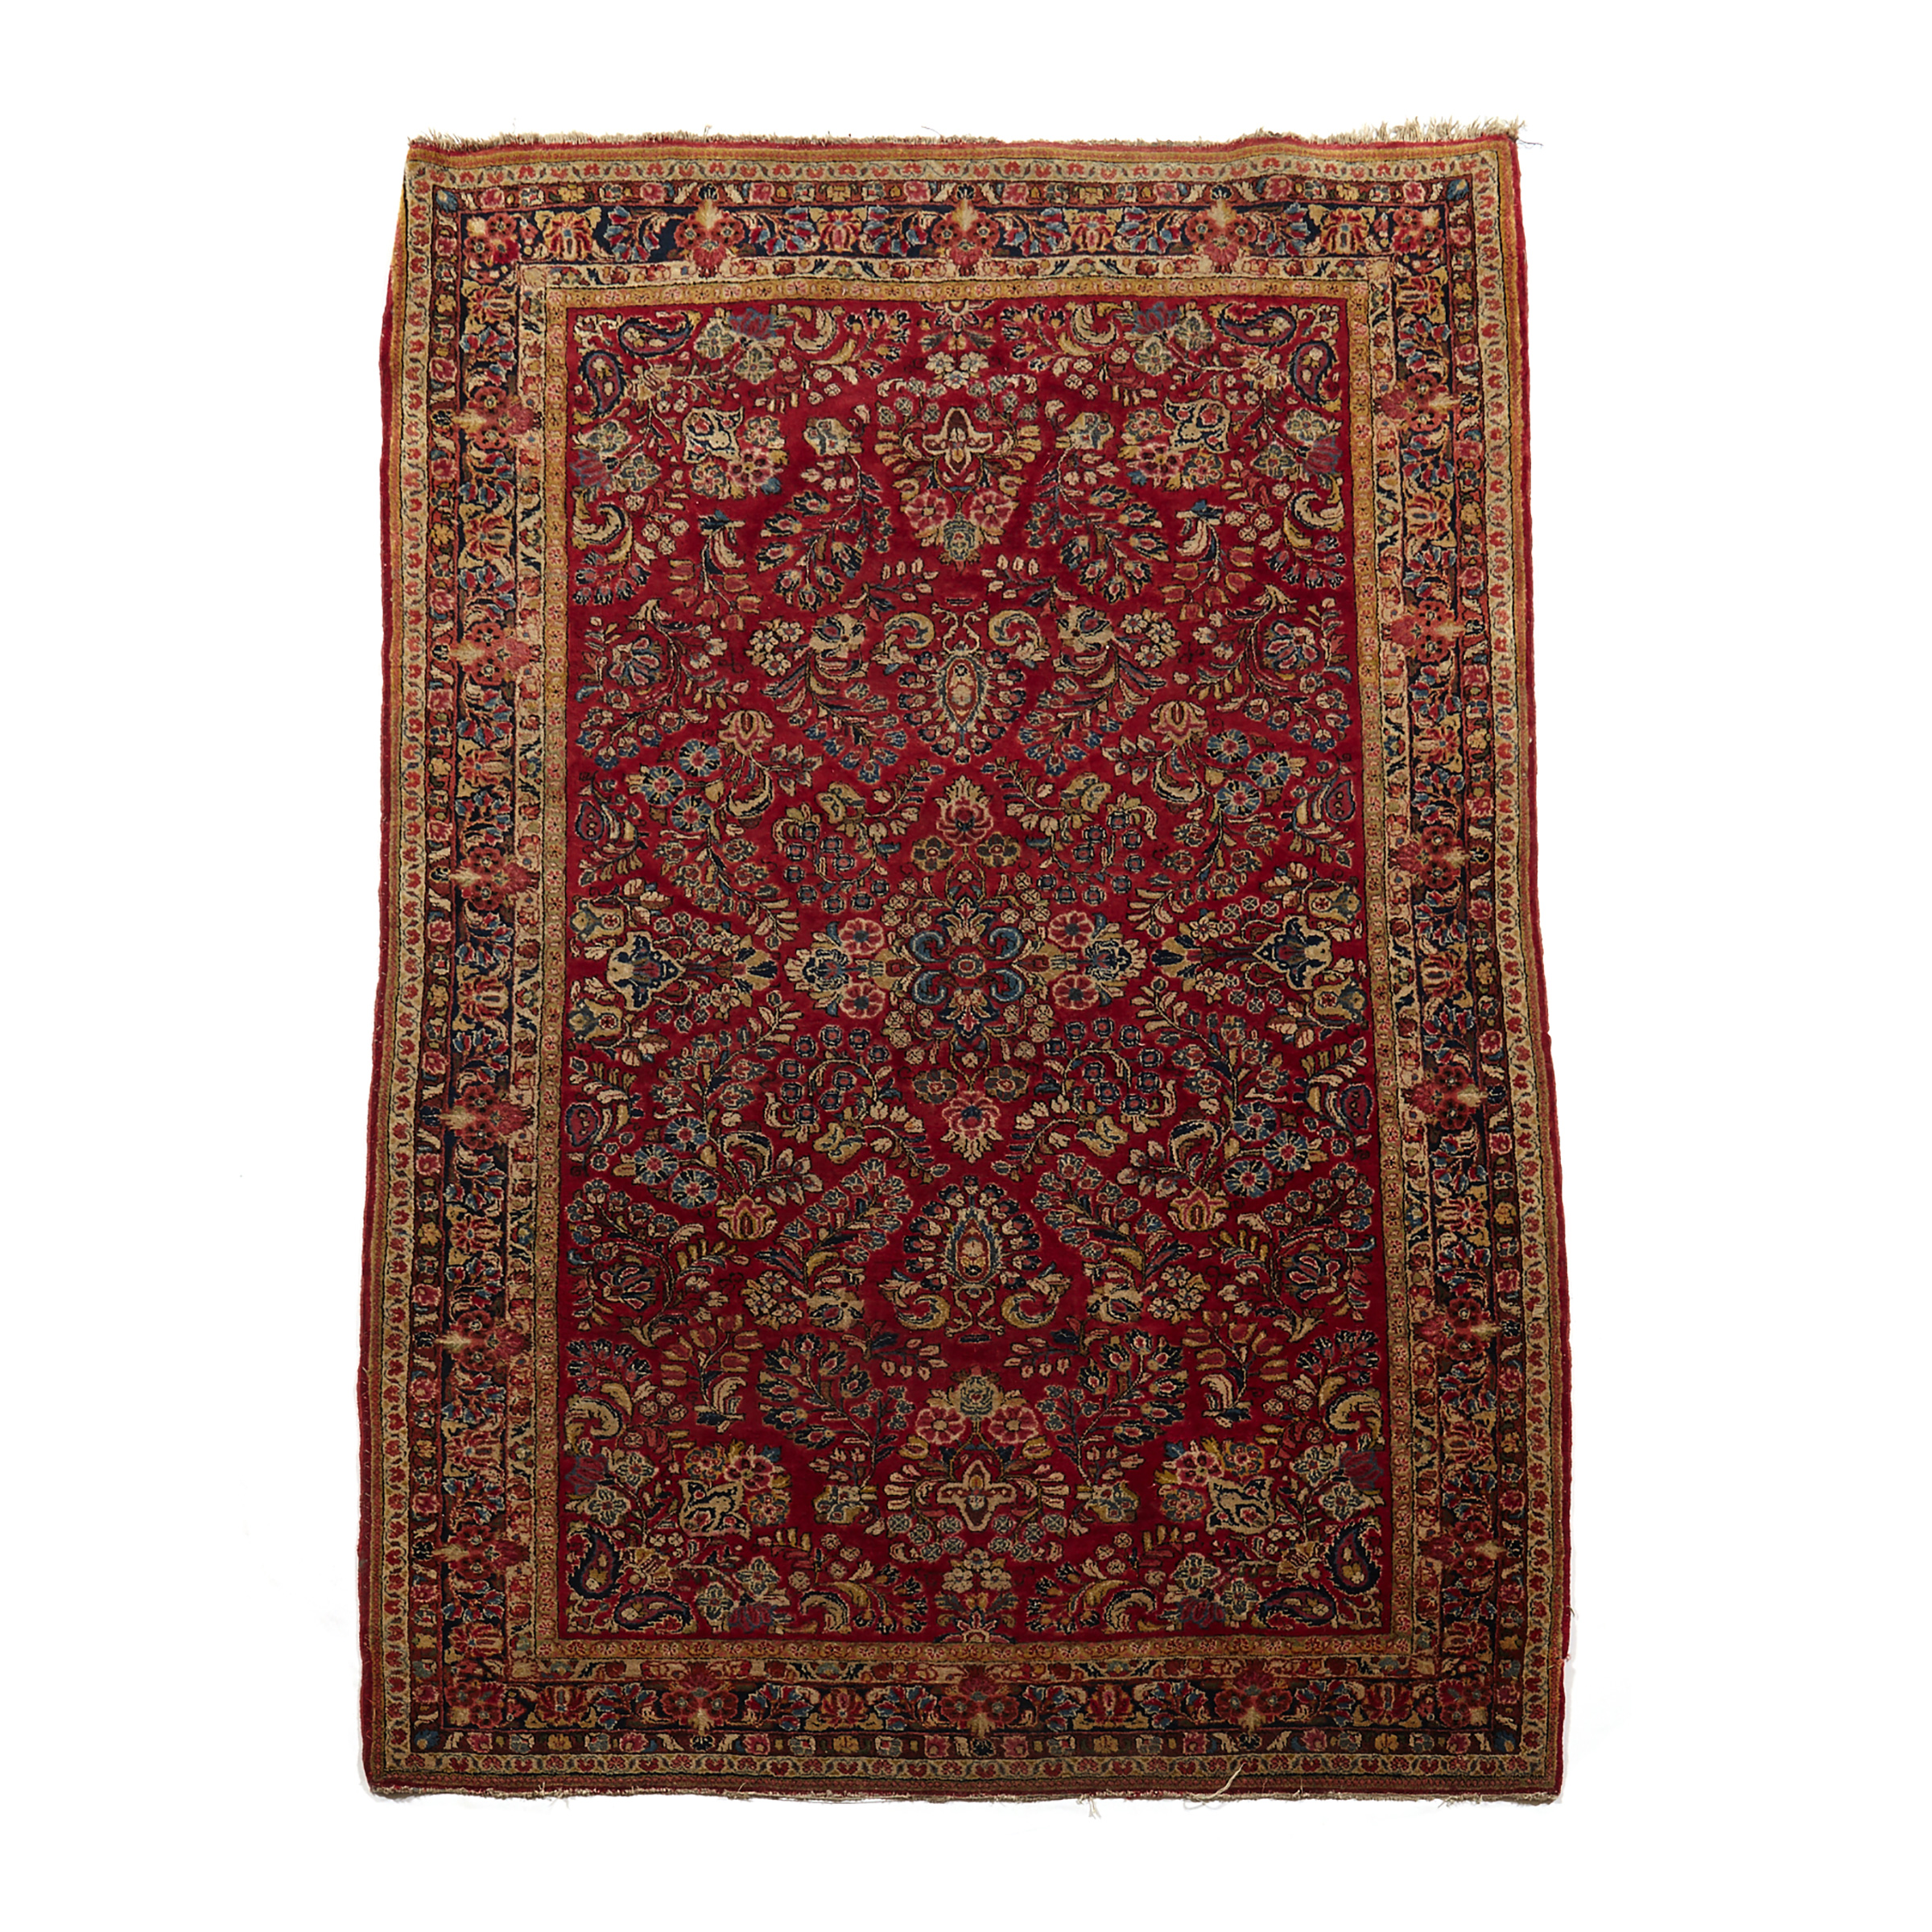 Sarouk Rug, Persian, early 20th century